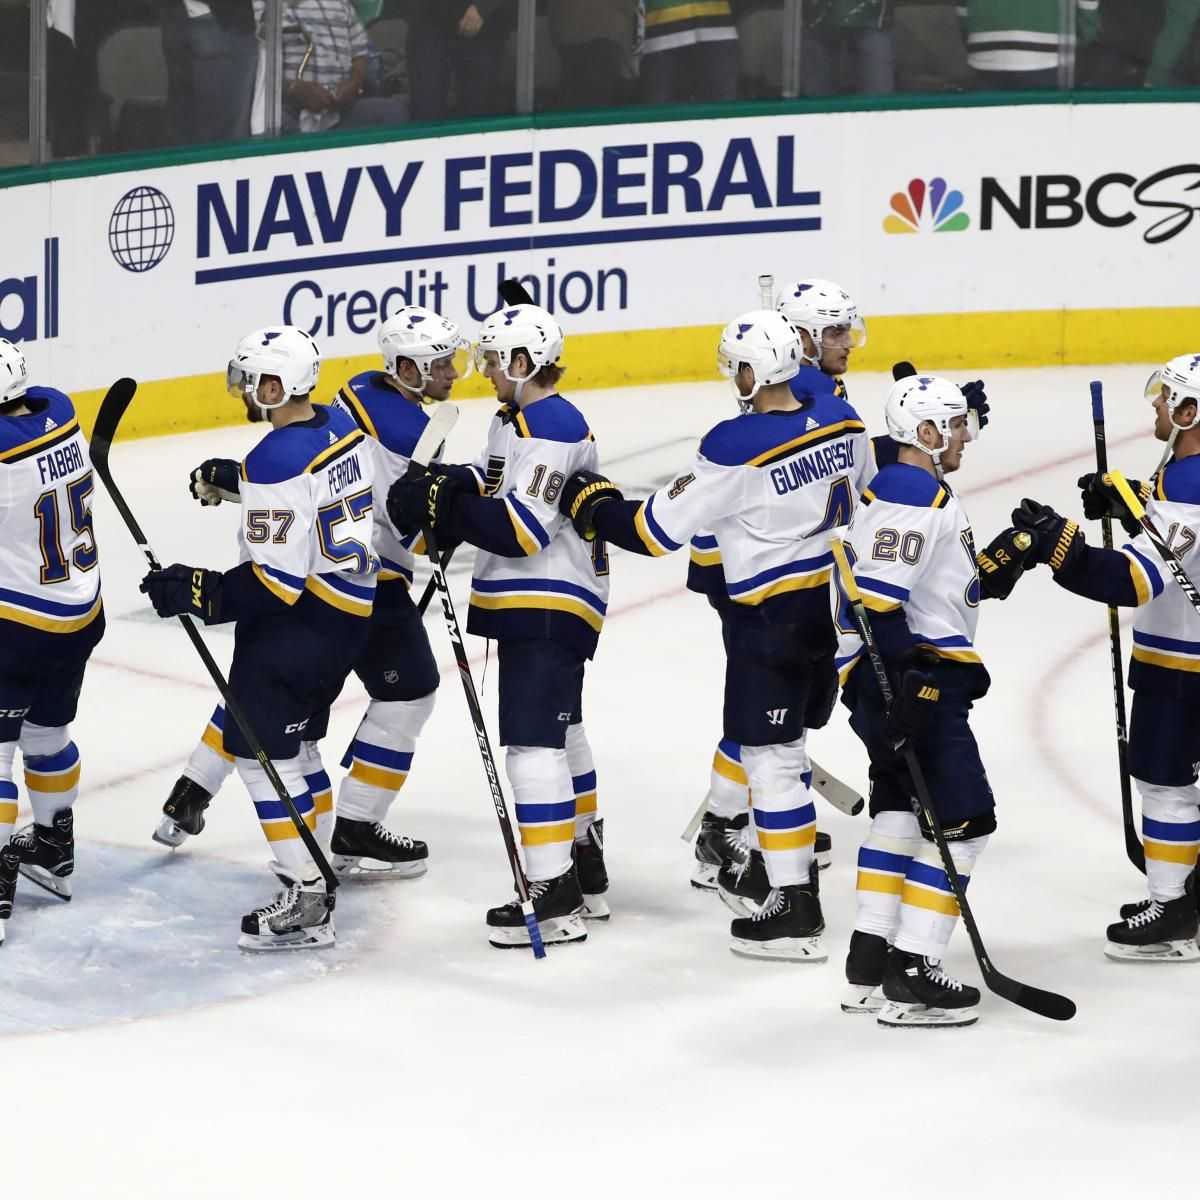 Nhl Playoff Bracket 2019 Tv Schedule Live Stream And Tuesday Picks Discovercardnhl Nhl Nhl Nhl Playoffs Tv Schedule